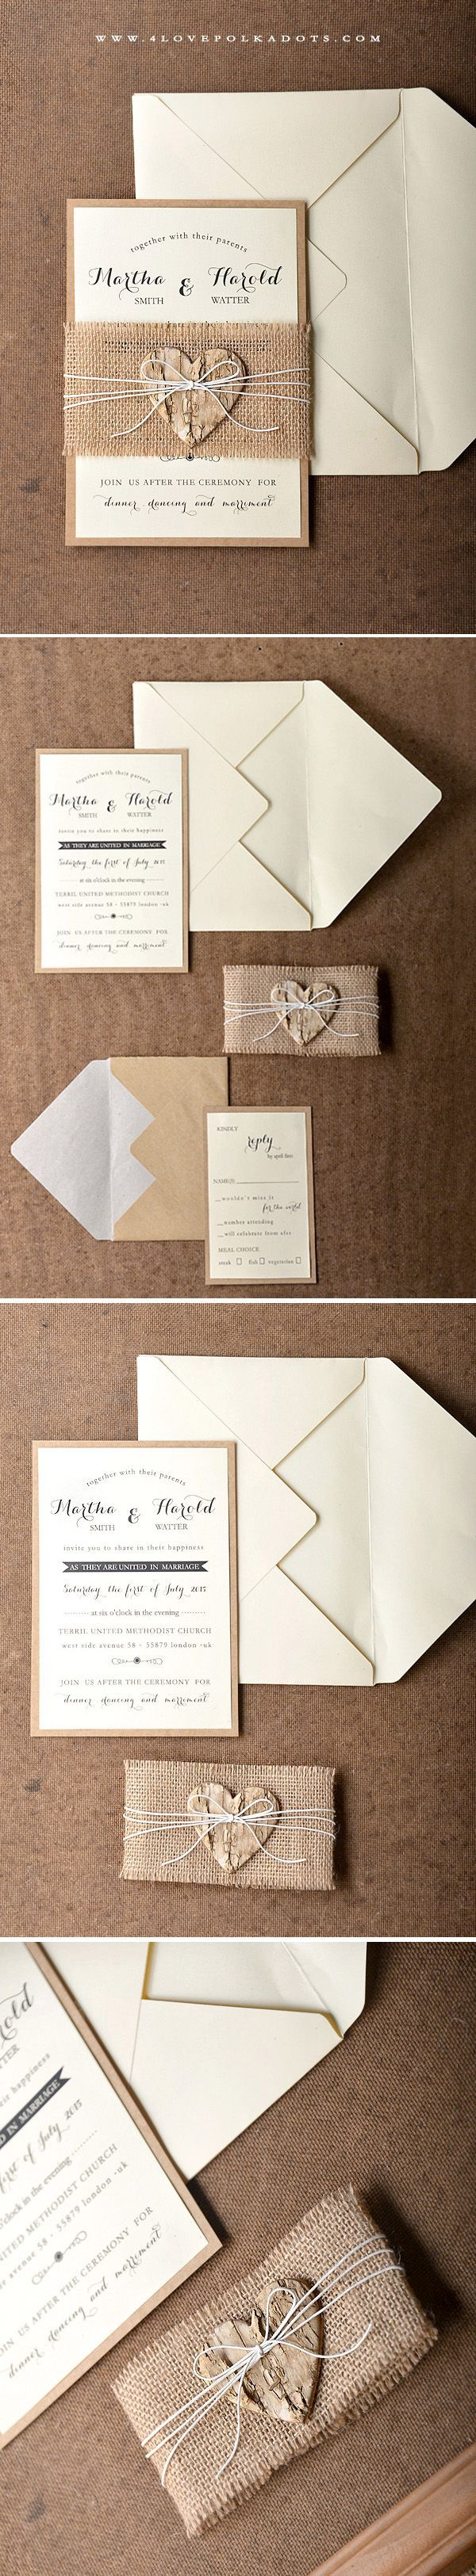 Handmade wedding invitations with birch bark heart